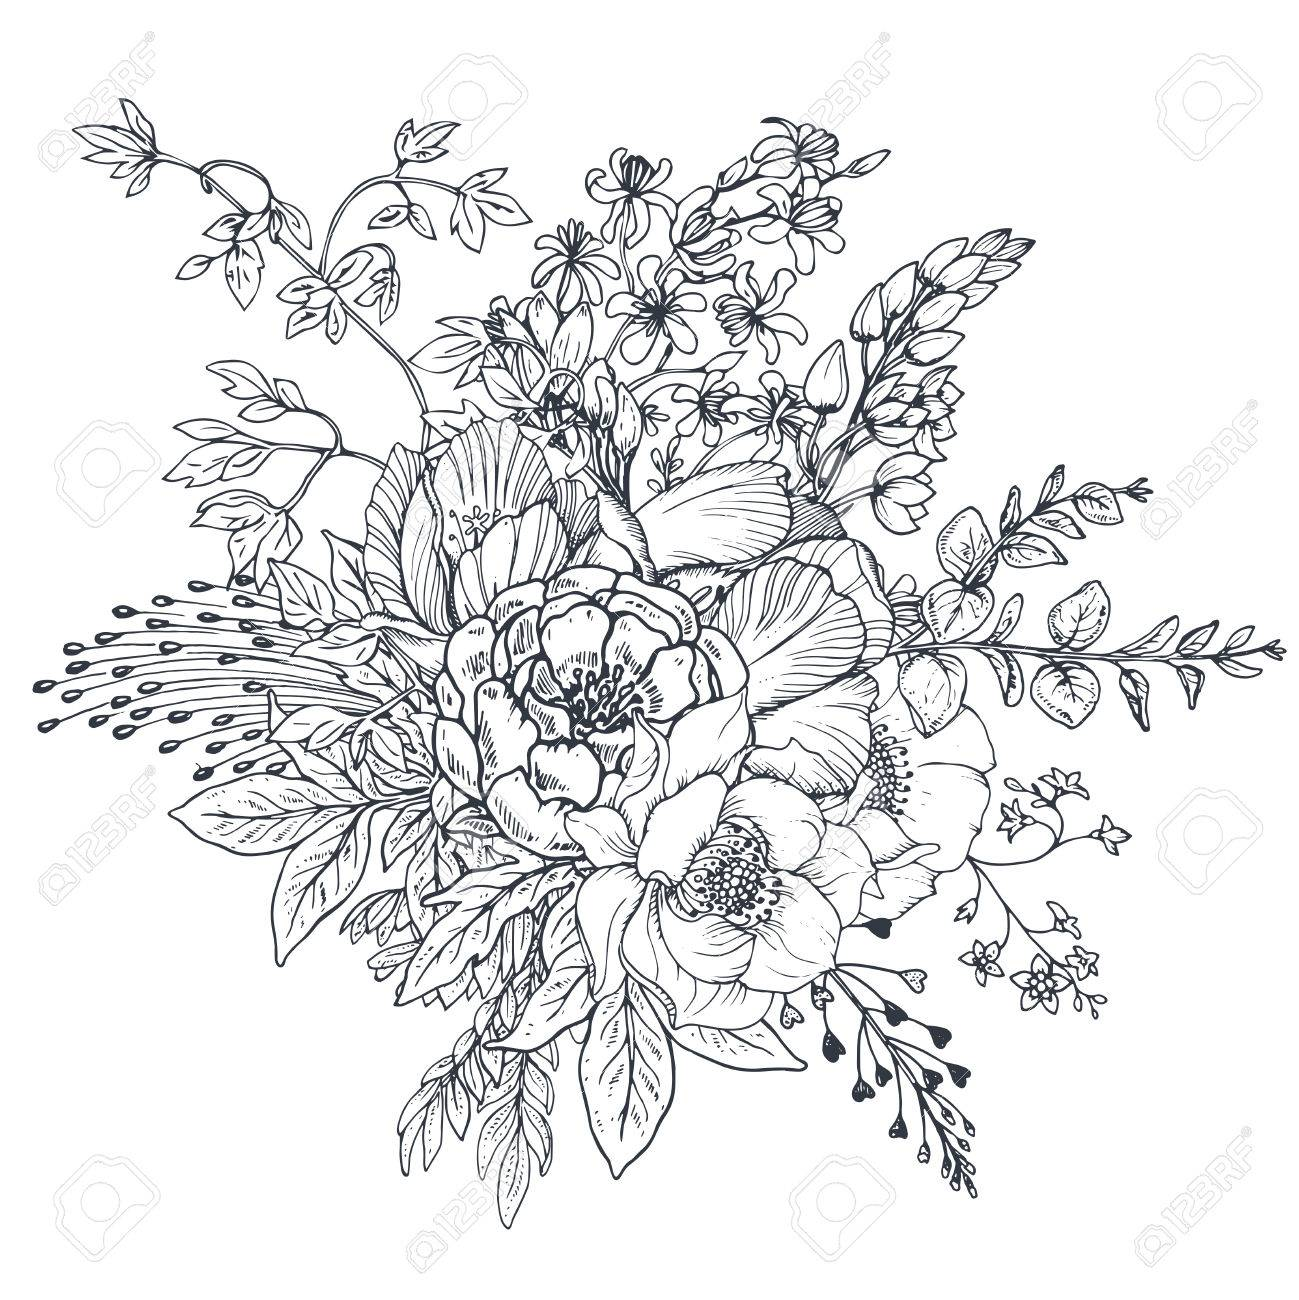 1299x1300 Floral Composition. Bouquet With Hand Drawn Flowers And Plants